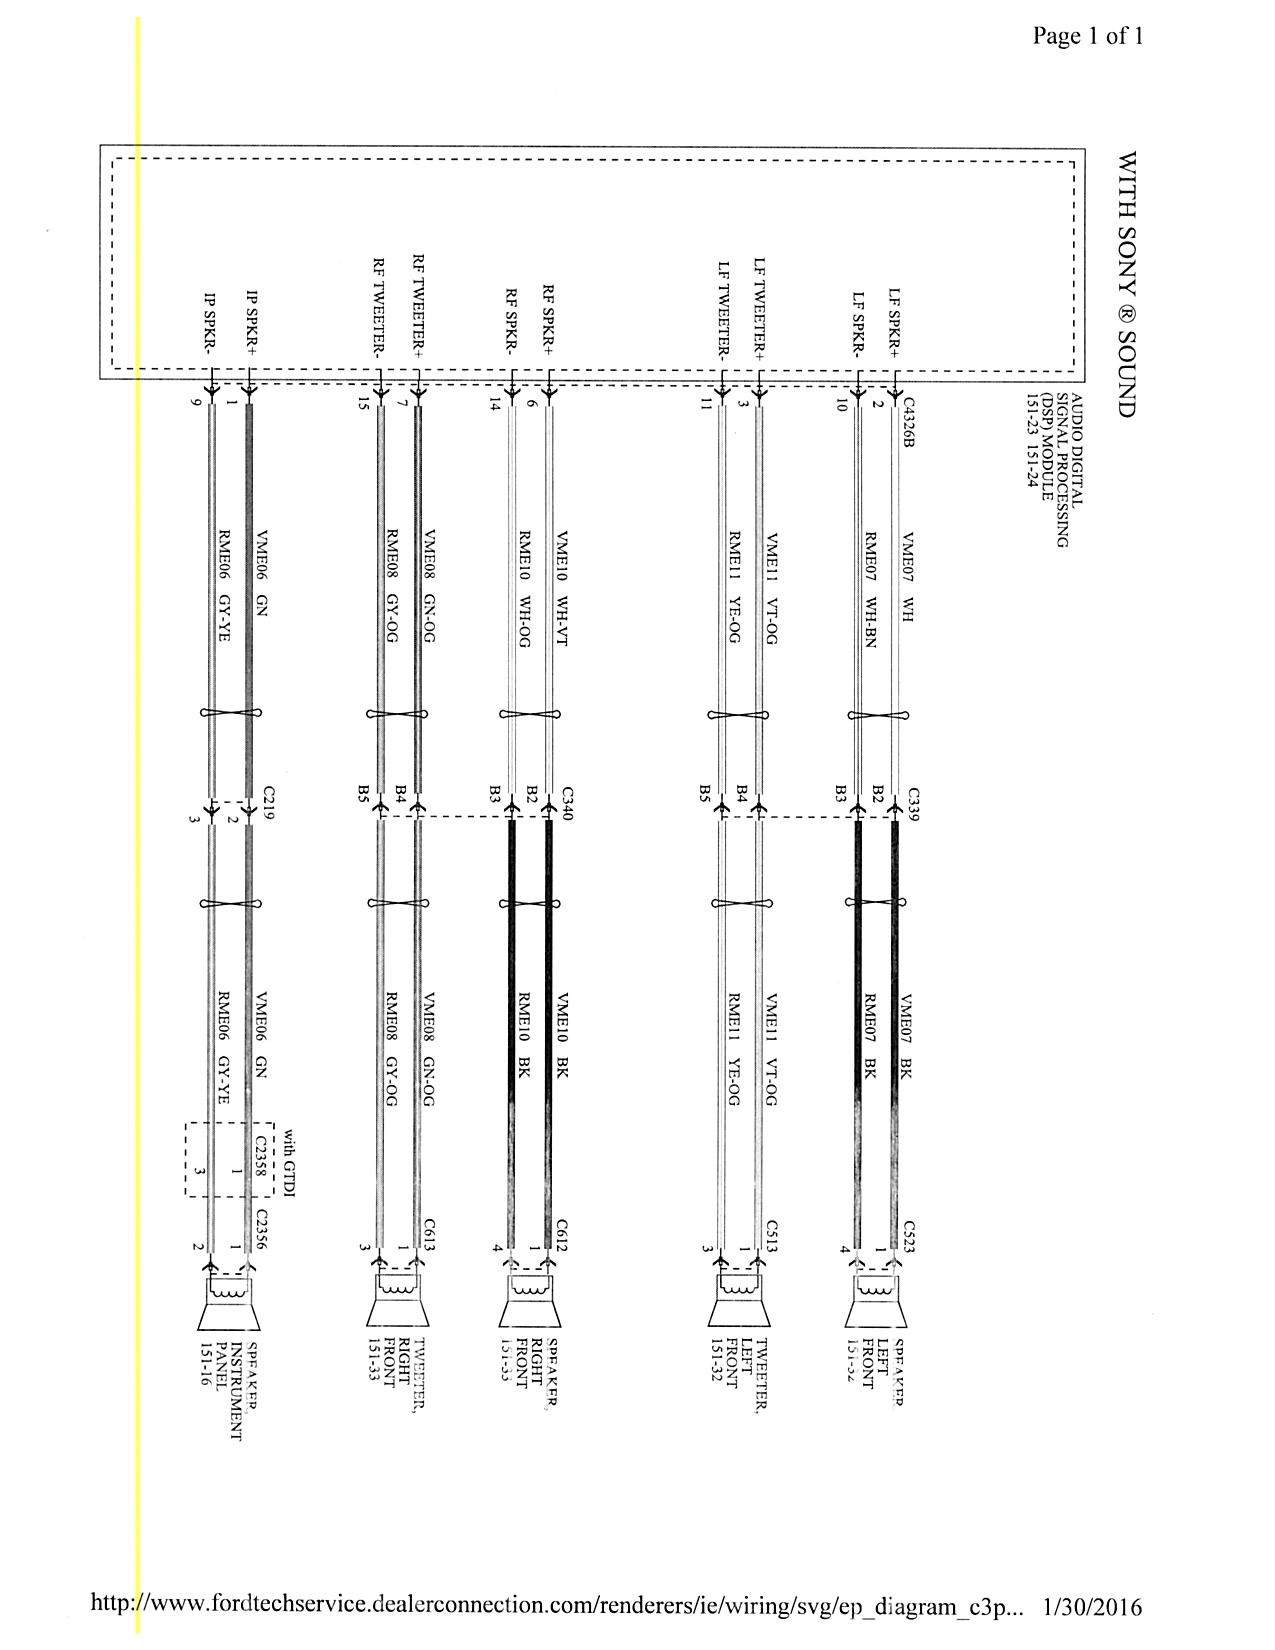 2015 Focus MK3 5 Stereo Wiring Diagram? Ford Focus Forum Ford